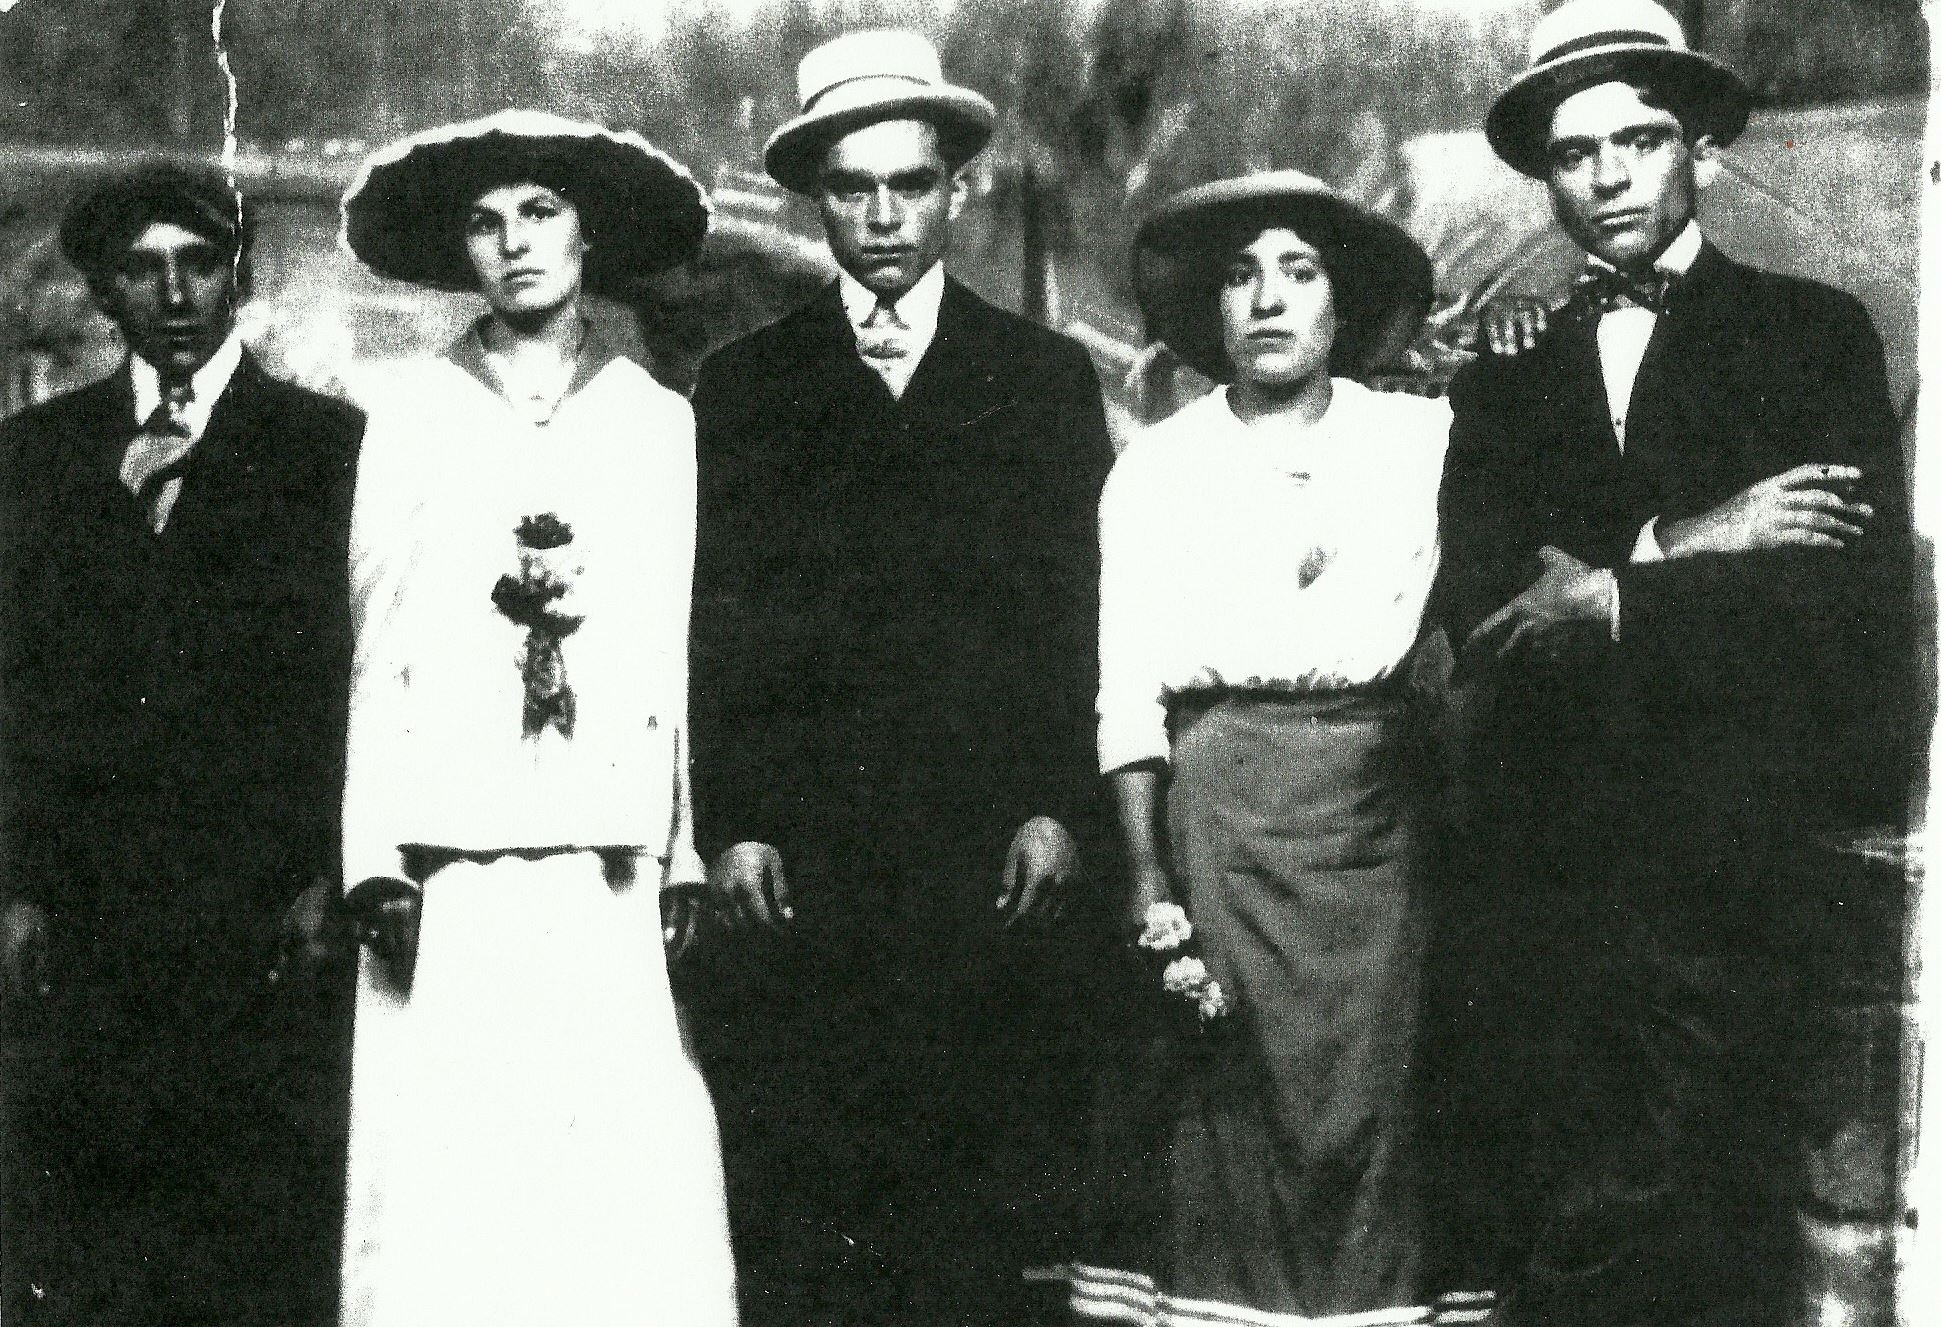 ArleneBurnettFam In this family photo from Arlene Burnett, her grandfather Nicholas Carrola is on the far right.